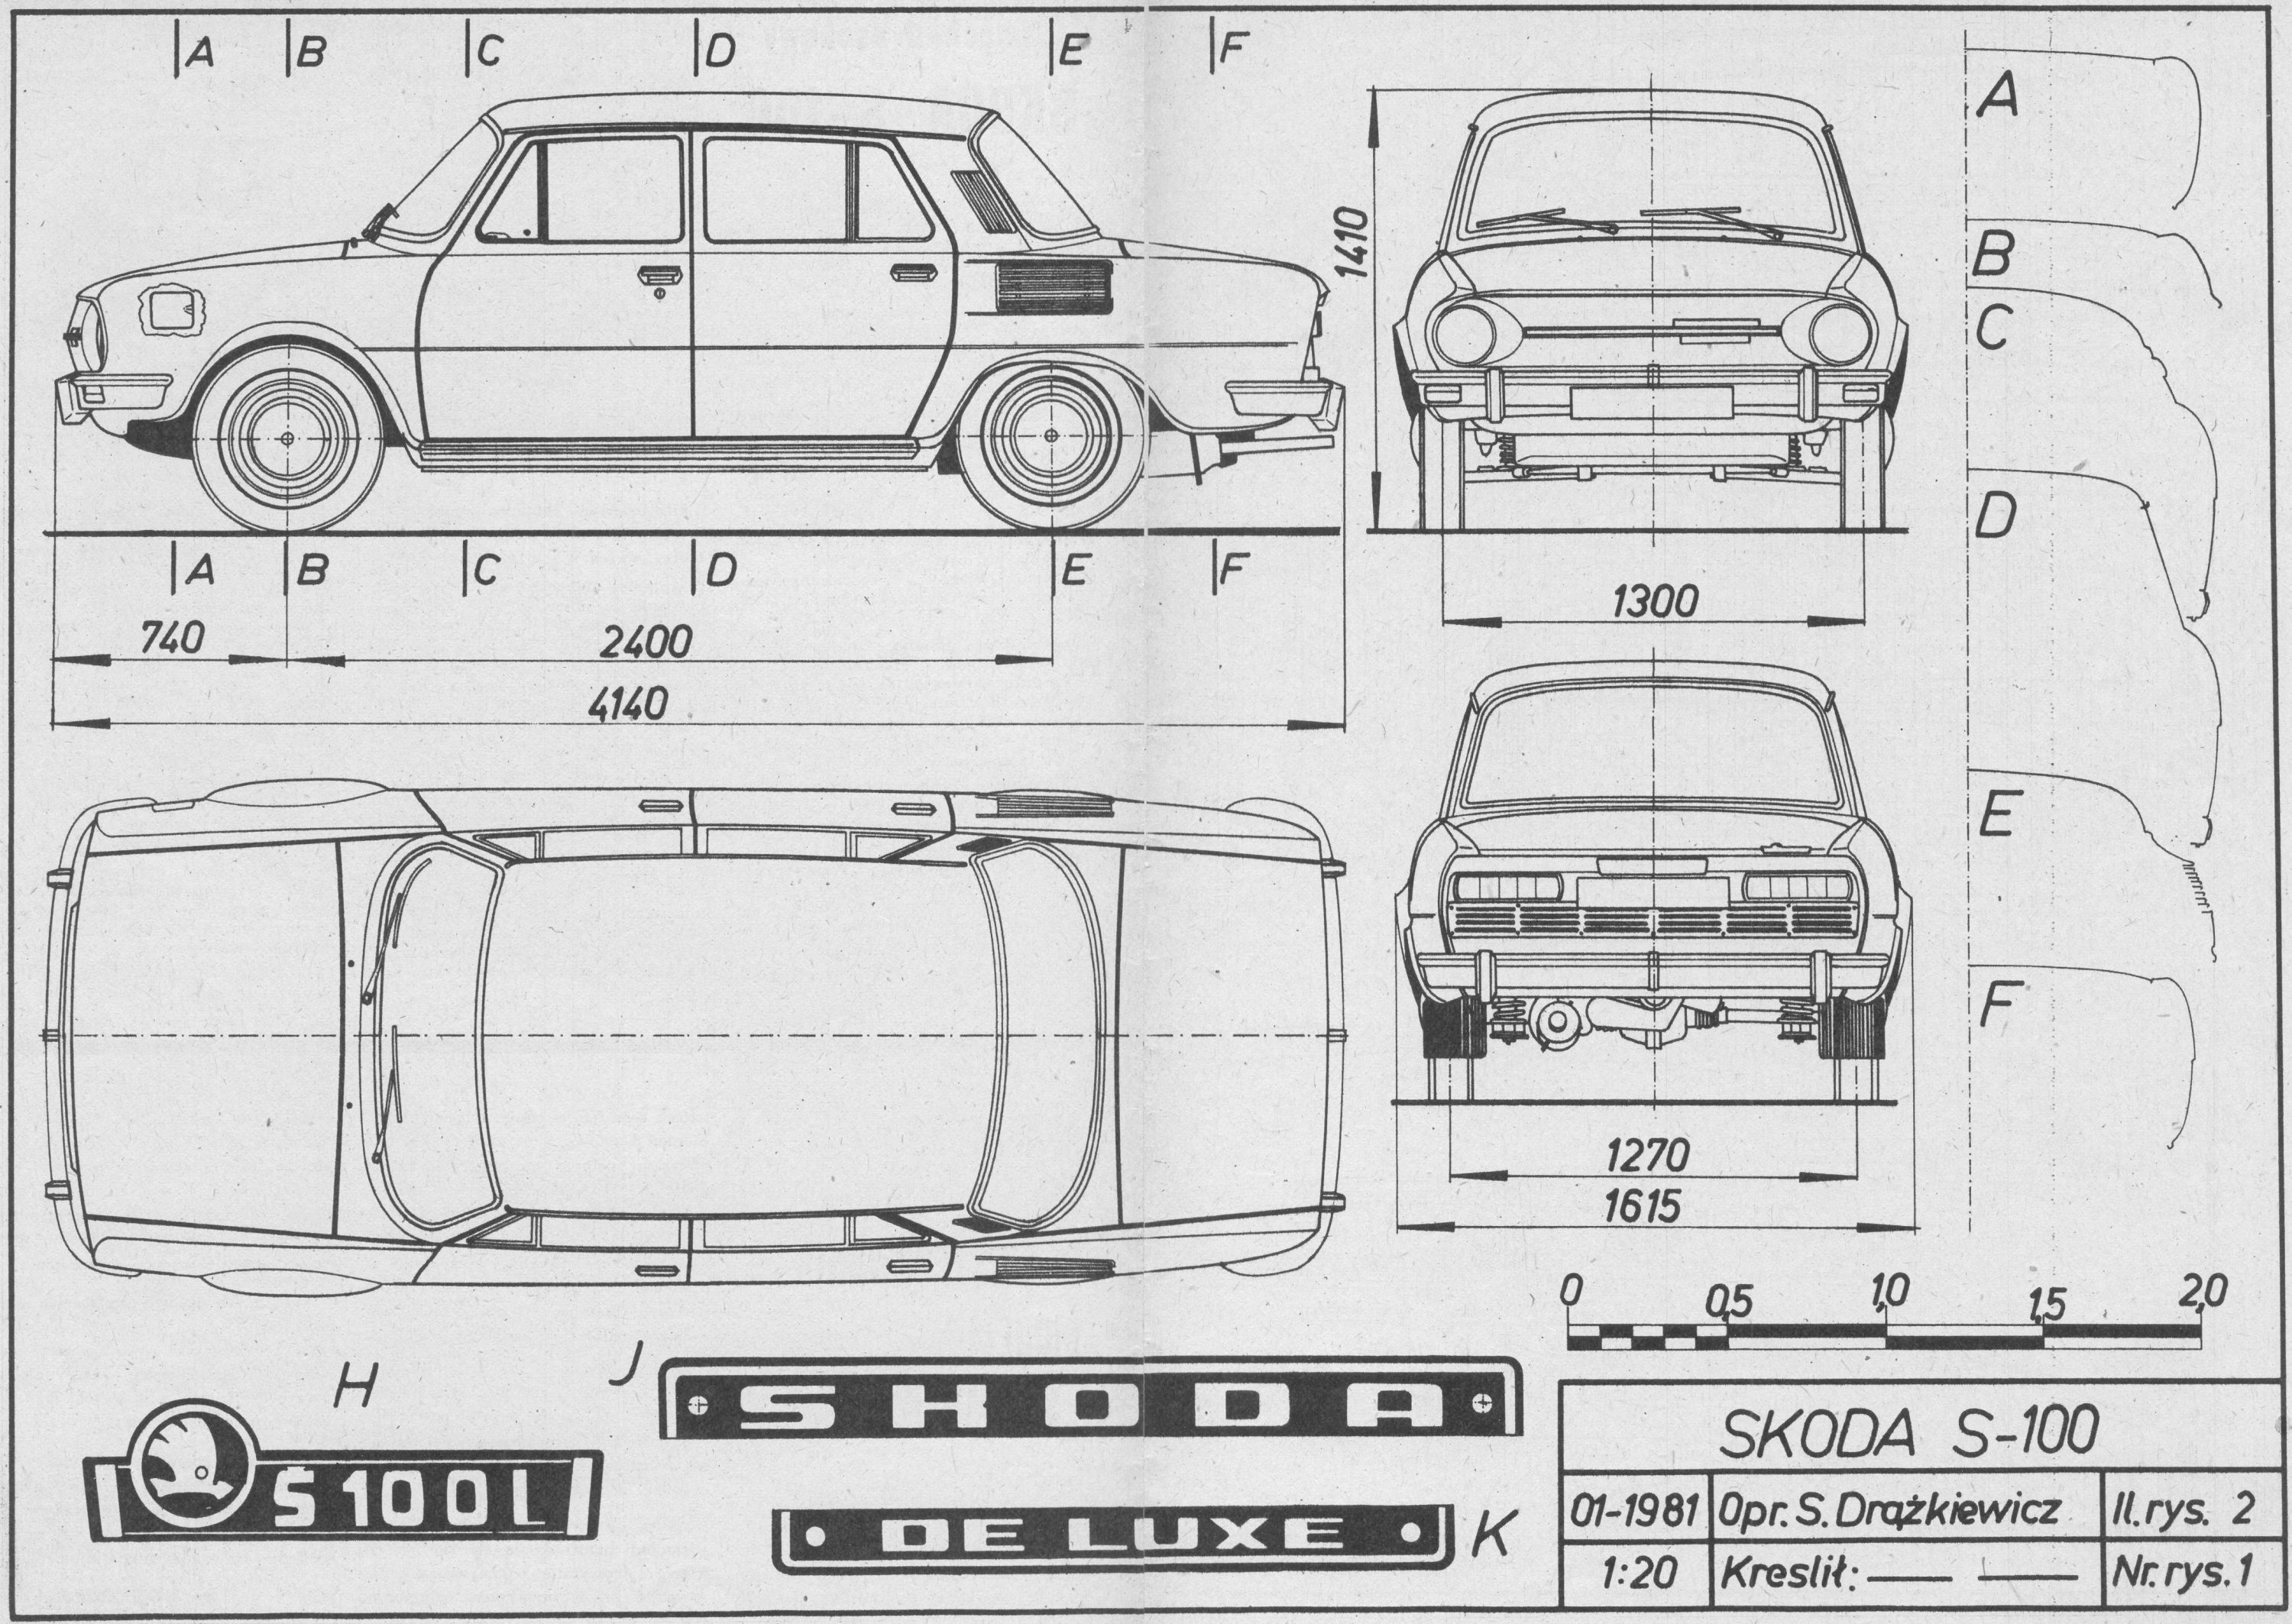 104662 moreover Ford Escort 1974 additionally Korean Car Brands furthermore Details likewise Muscle Car Coloring Pages. on hyundai sports car